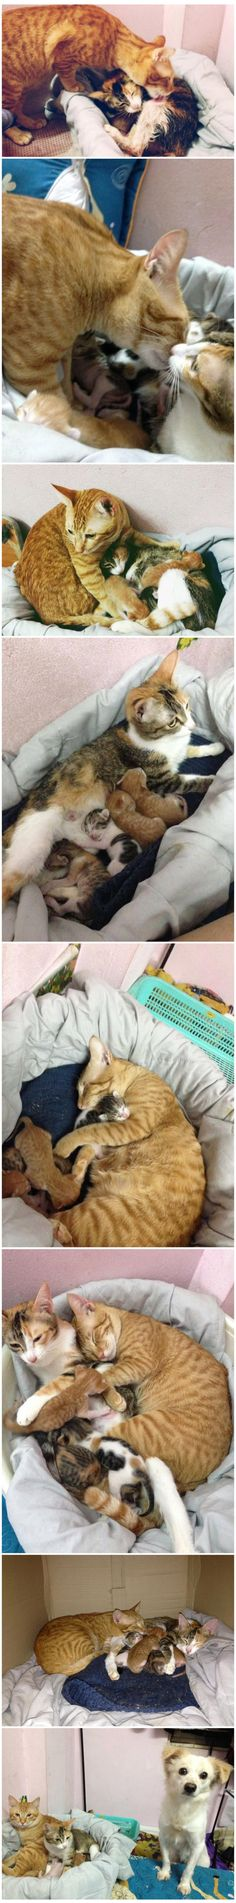 Husband cat supports his wife during and after labor - 9GAG